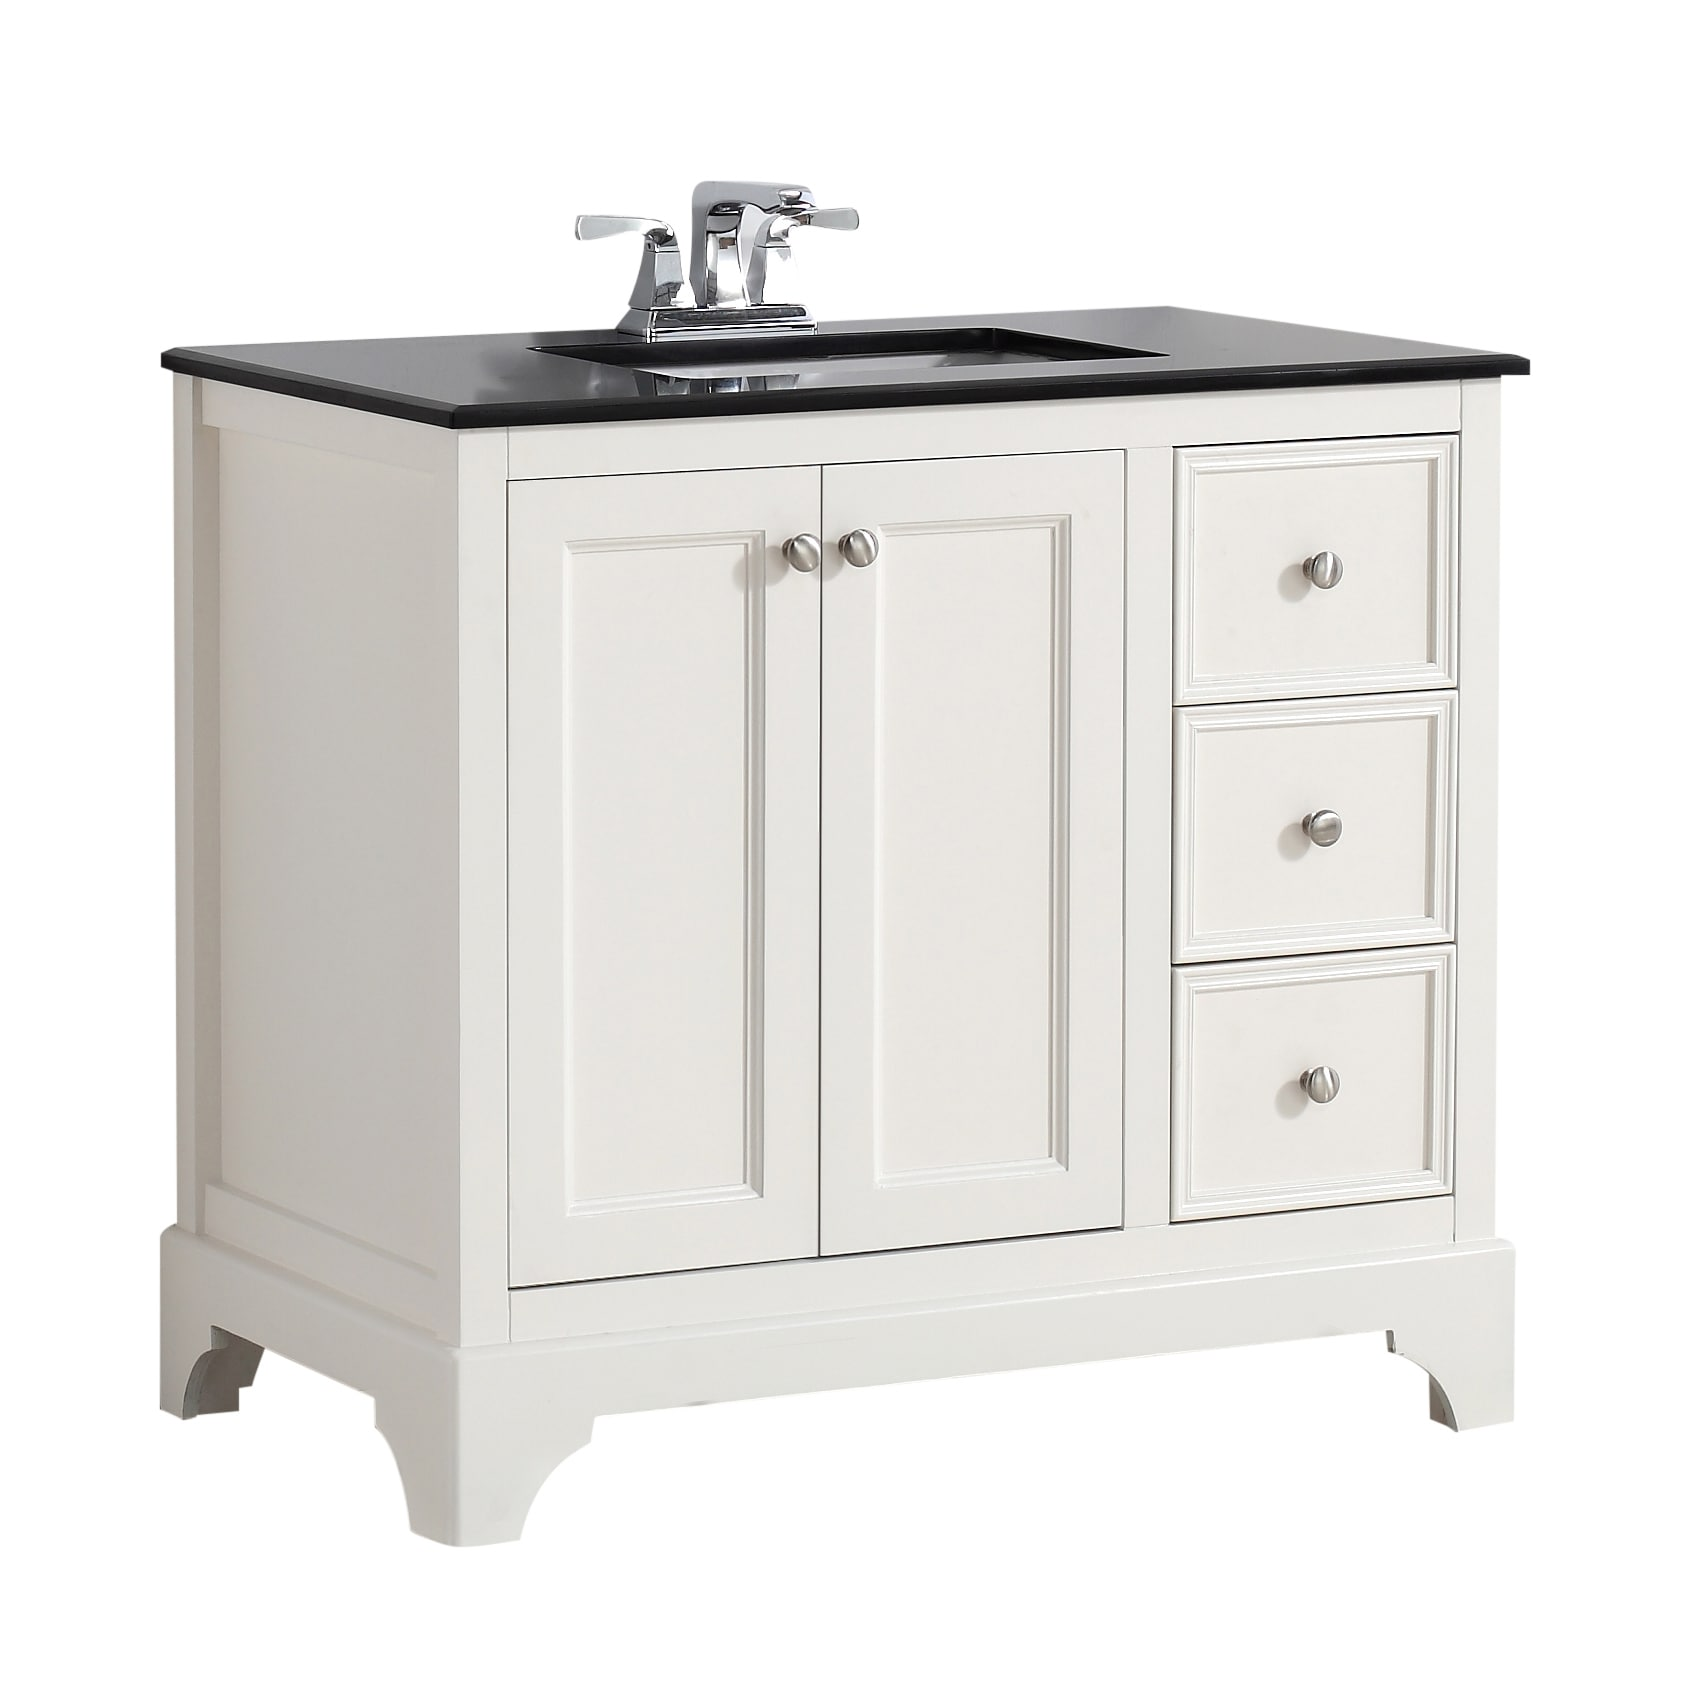 Shop wyndenhall carlyle 36 inch white bath vanity with black granite top free shipping today overstock com 9960021